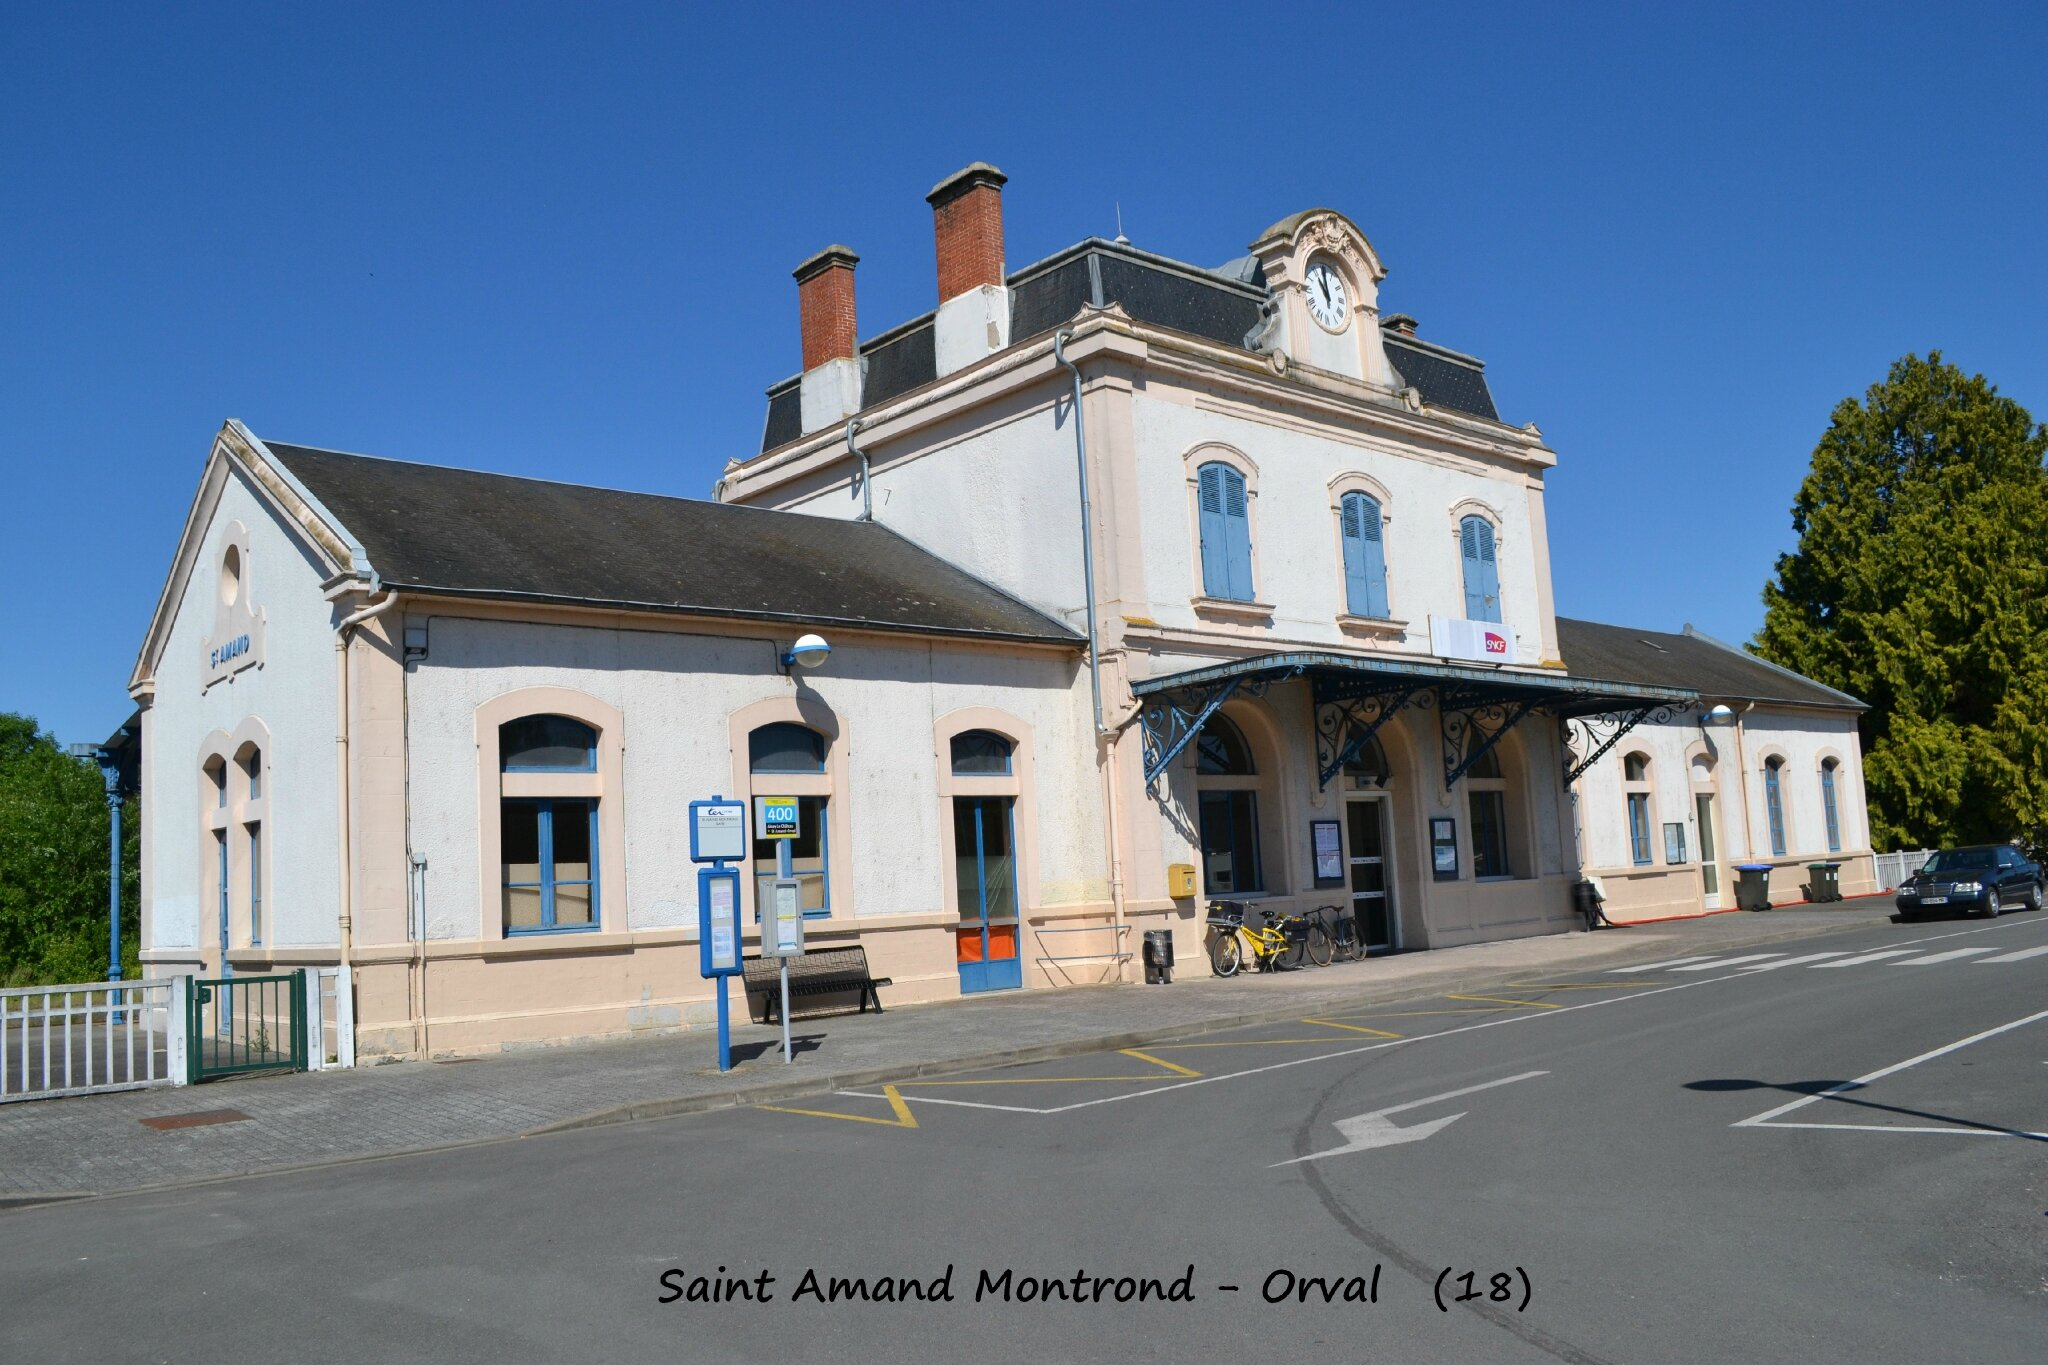 la gare de saint amand montrond orval 18 les gares de france et leurs infrastructures. Black Bedroom Furniture Sets. Home Design Ideas